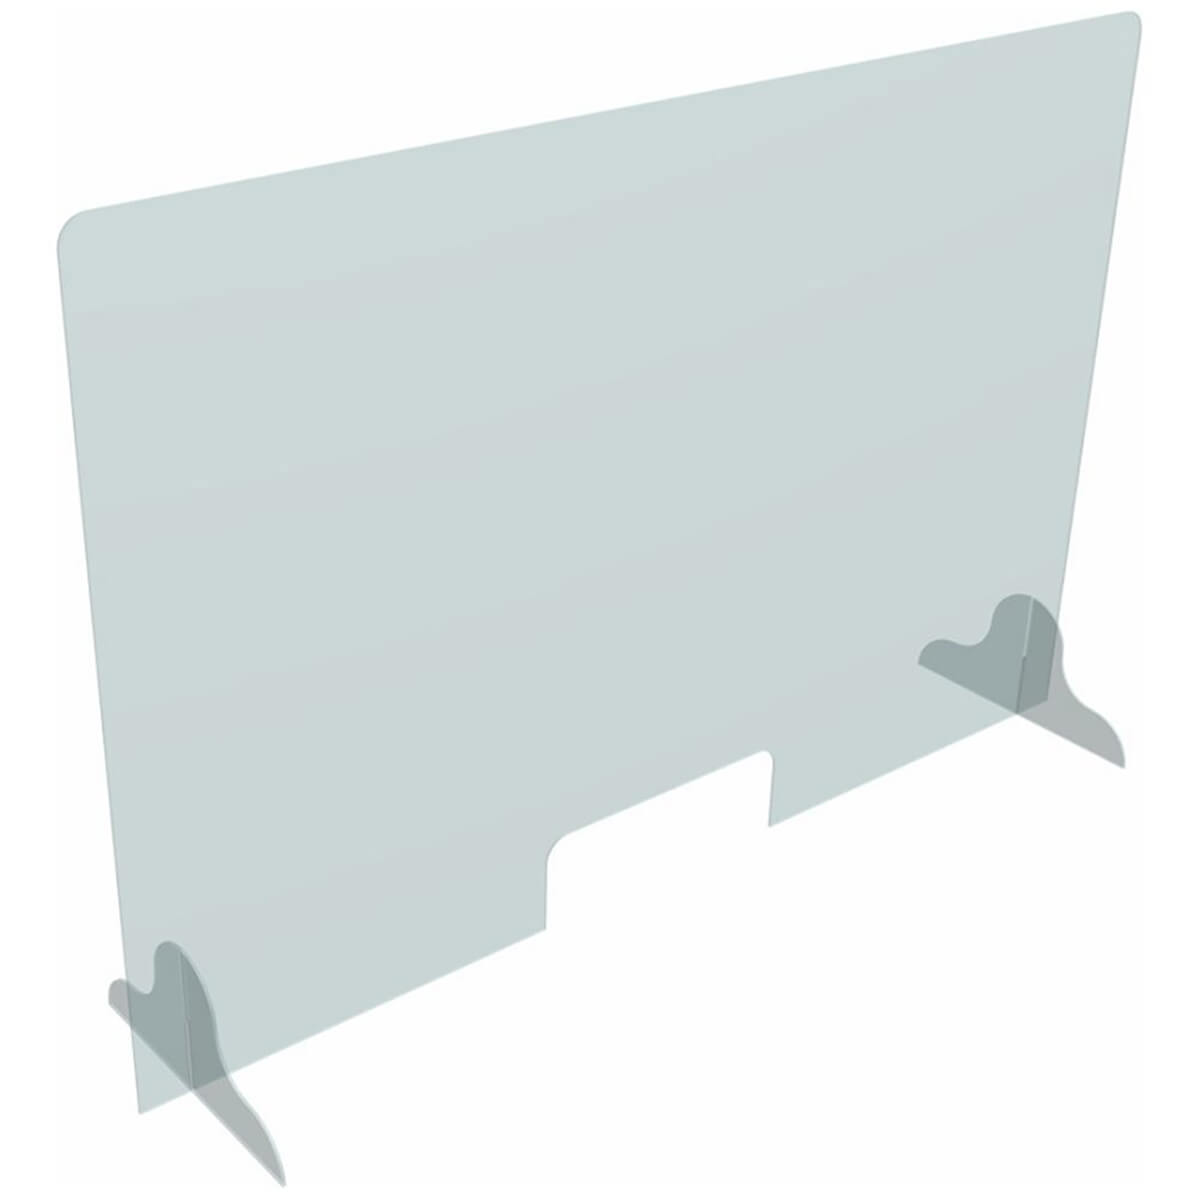 acrylic protection panel, office safety, safe, covid-19, coronavirus, skyline entourage